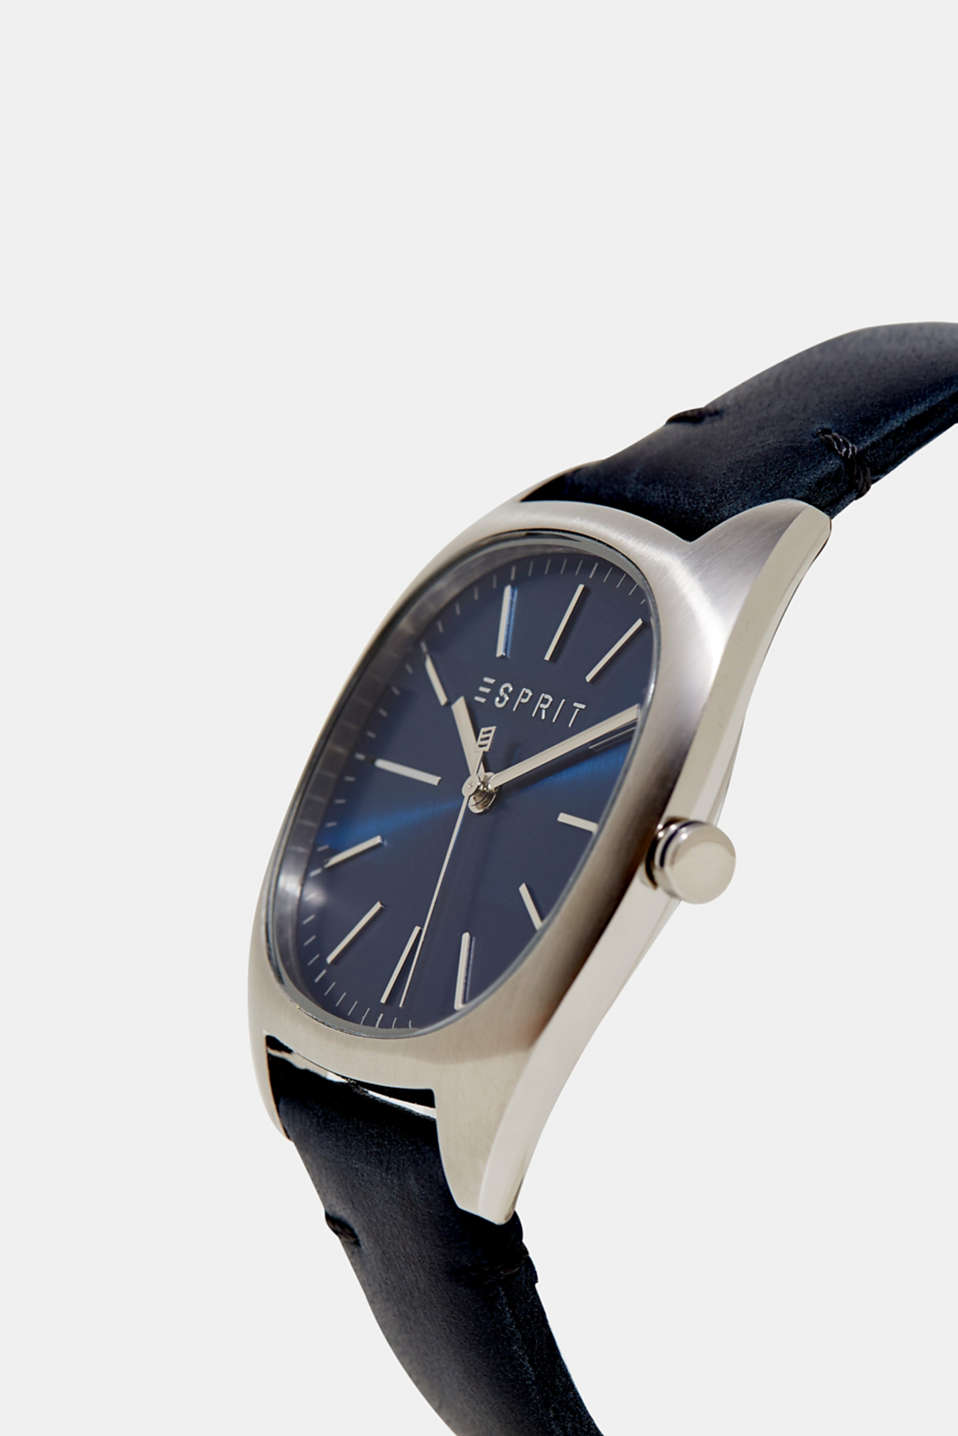 Mens watch with a leather strap